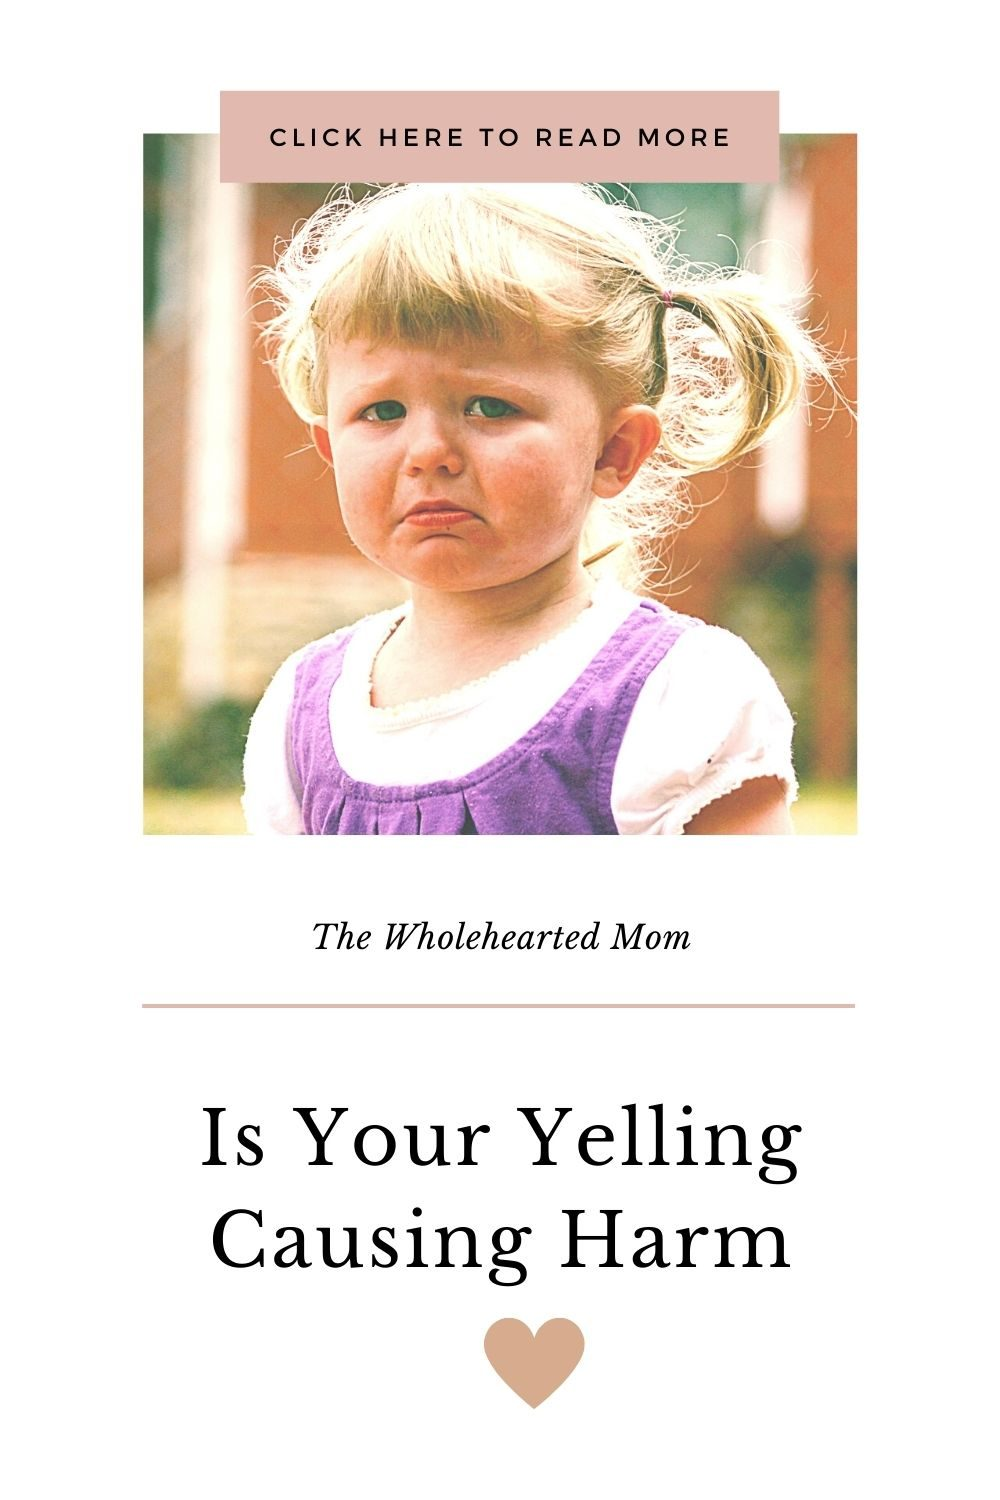 is your yelling causing harm?